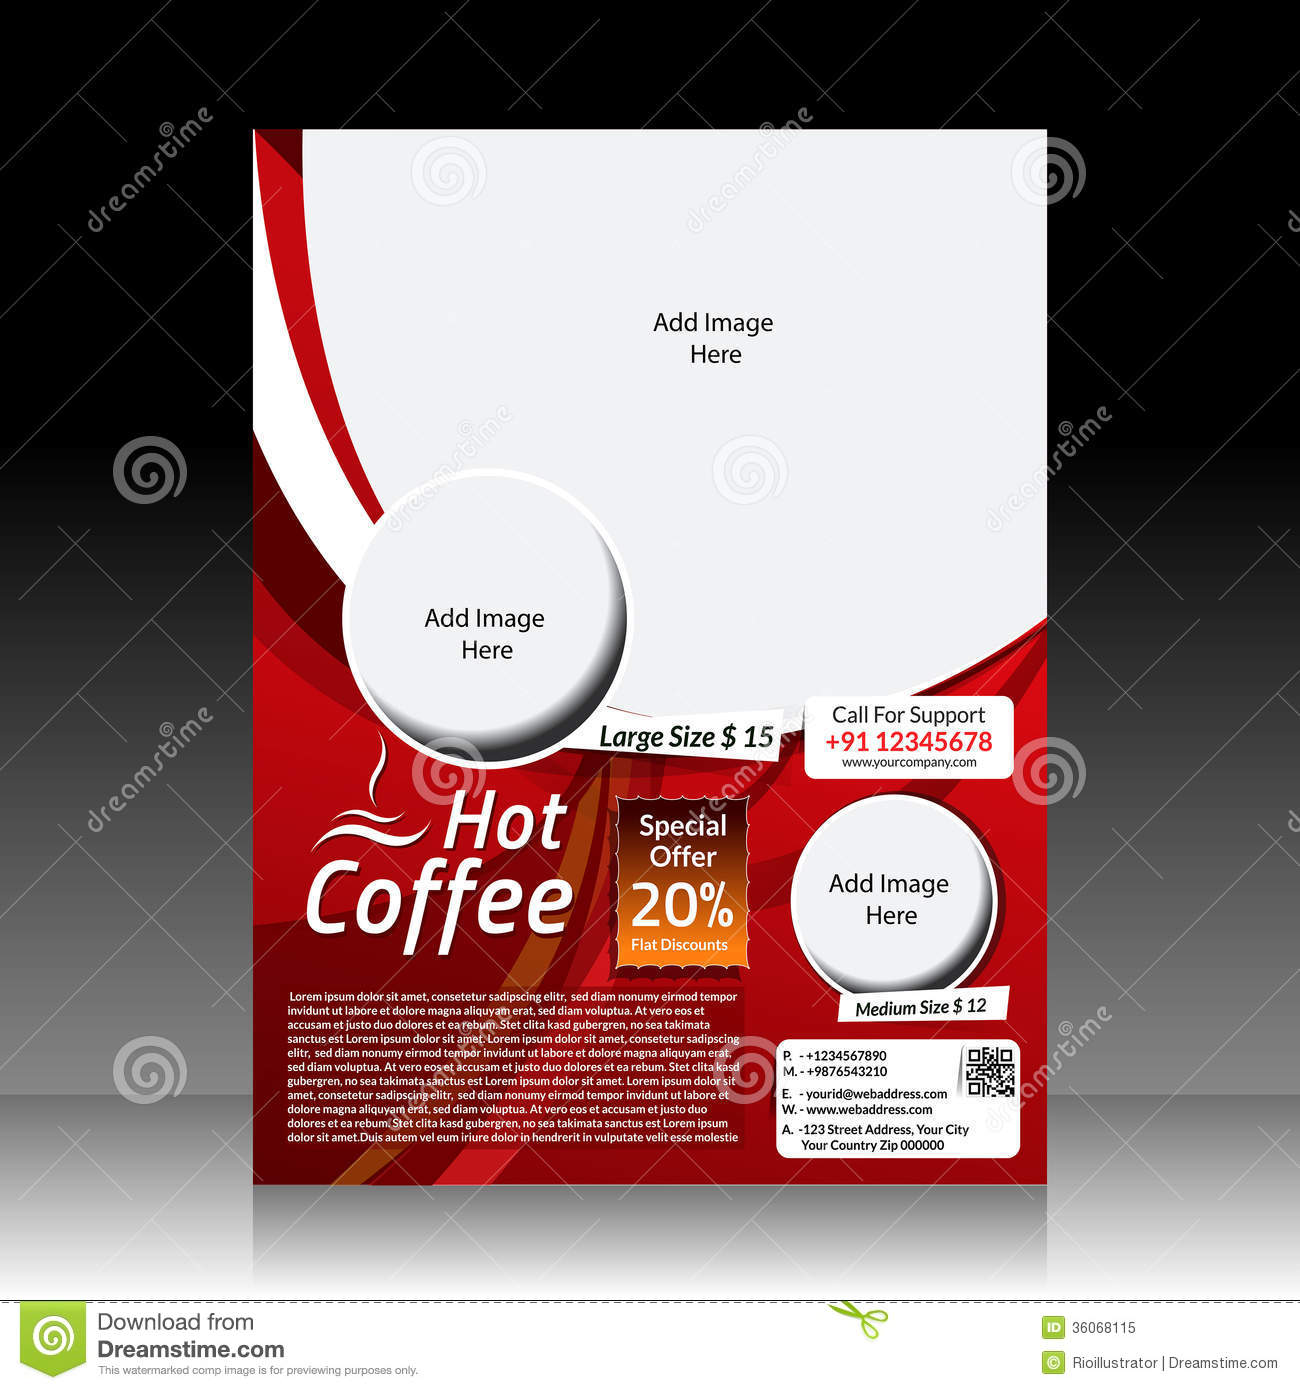 Restaurant Flyer Design Vector : Vector coffee shop flyer royalty free stock photo image